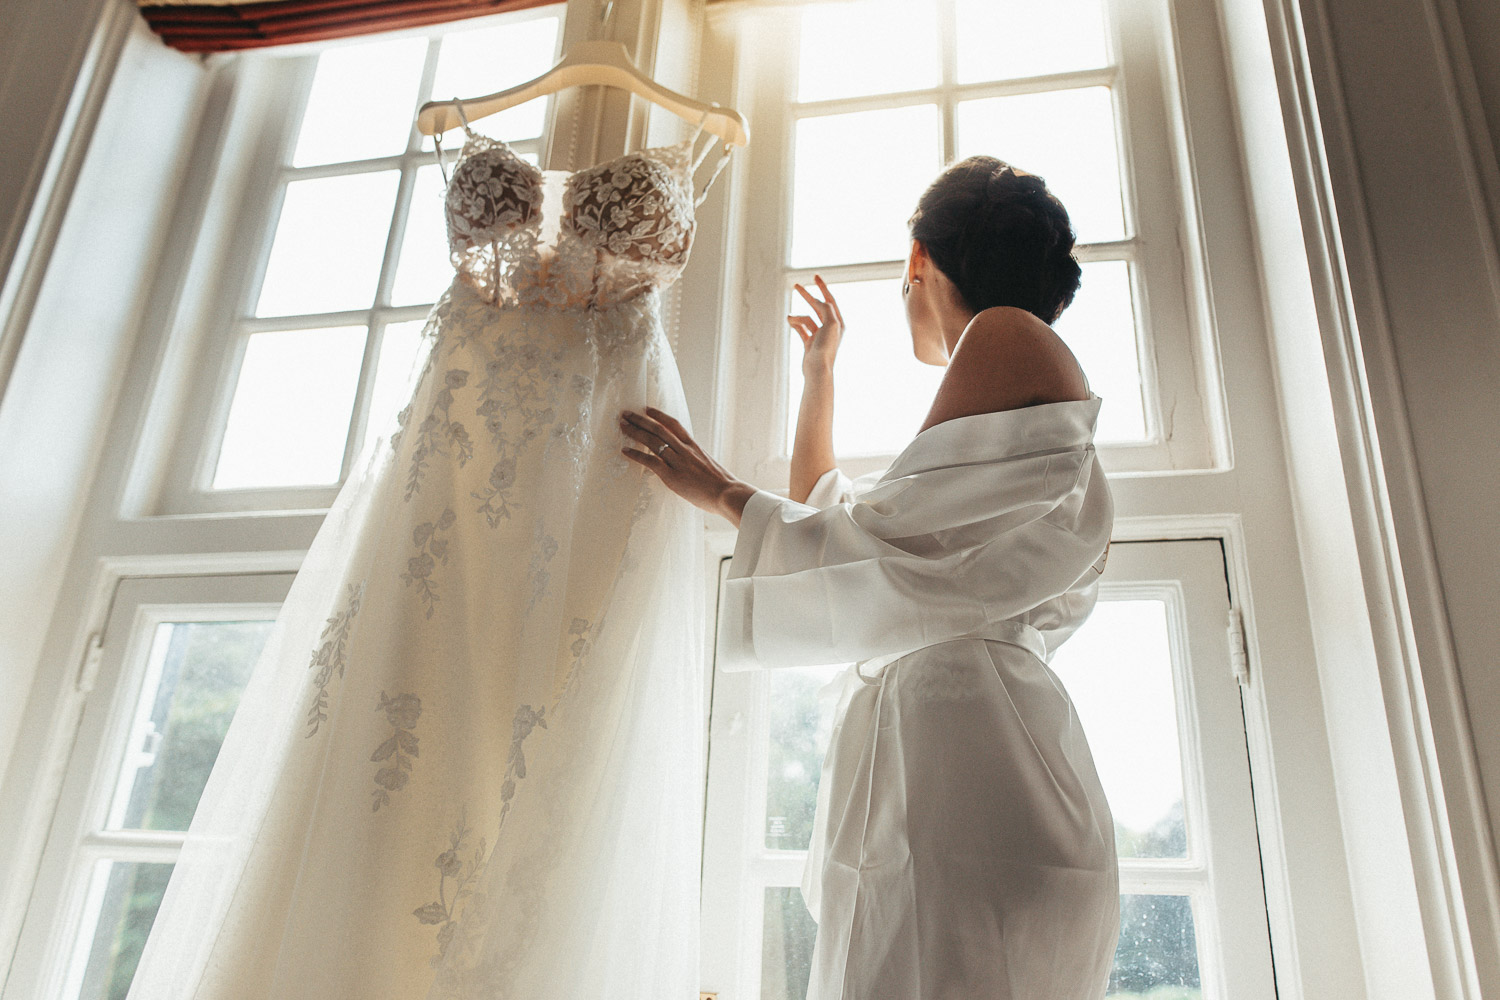 The bride is looking to the window and touching the dress while photographer makes a photo for wedding photography in Netherlands